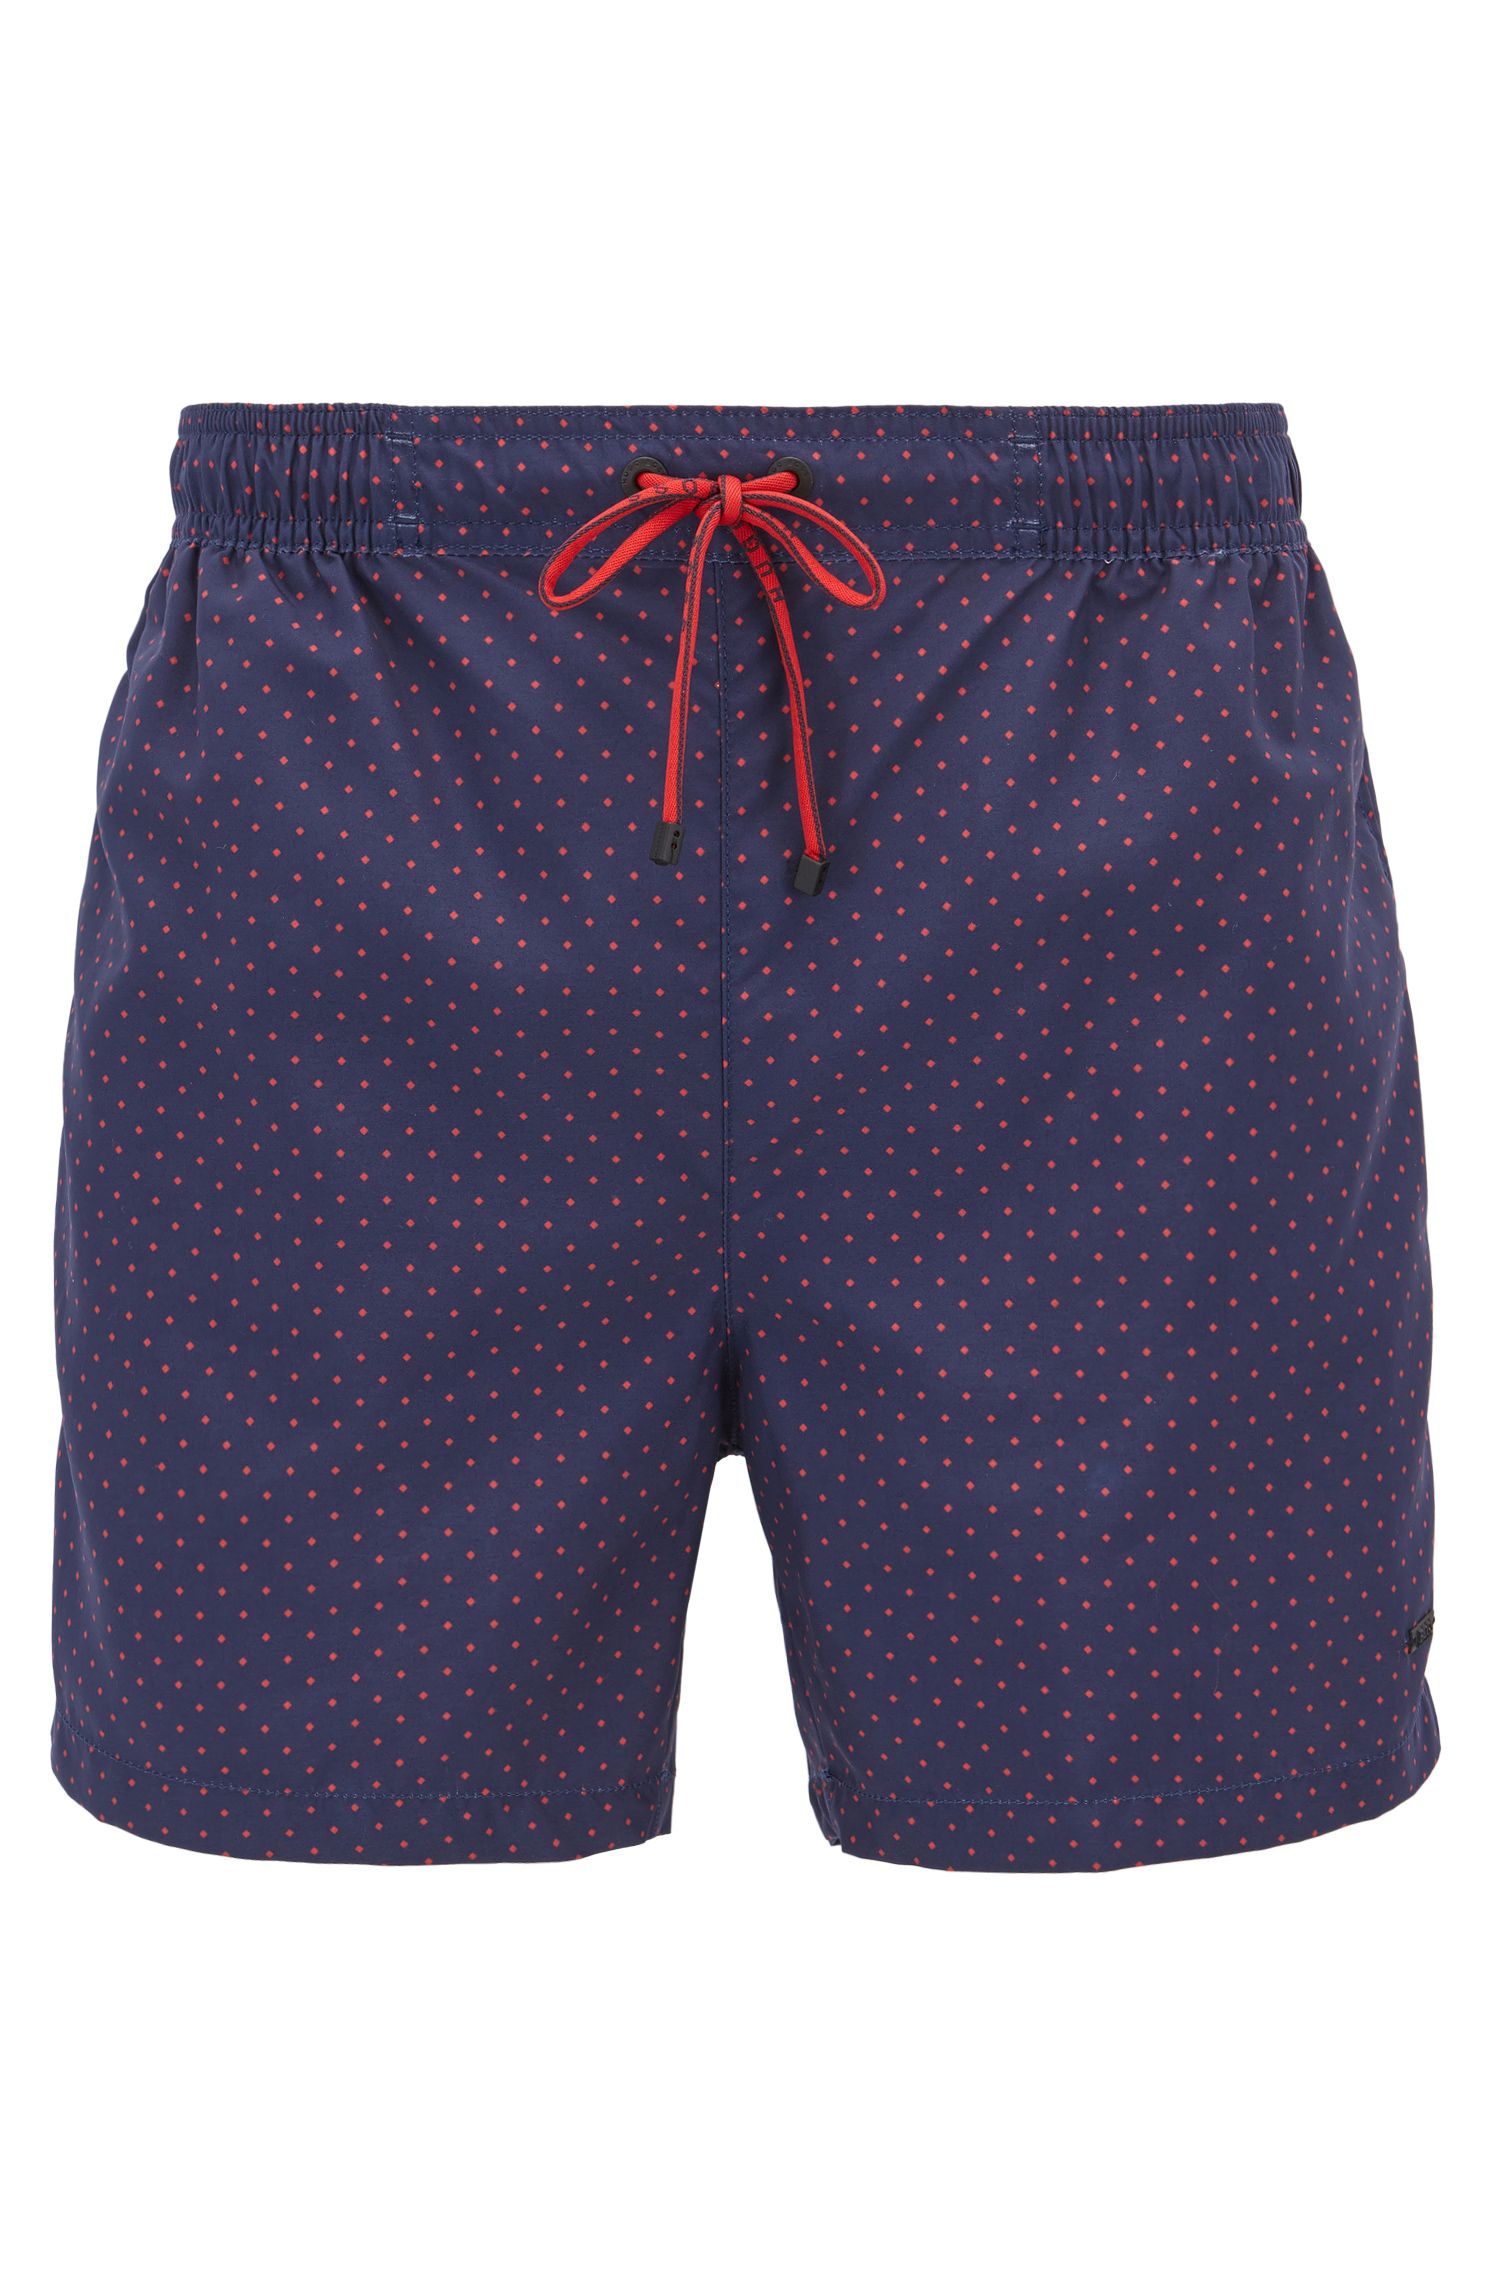 Square-Print Quick Dry Swim Trunk | Boxfish